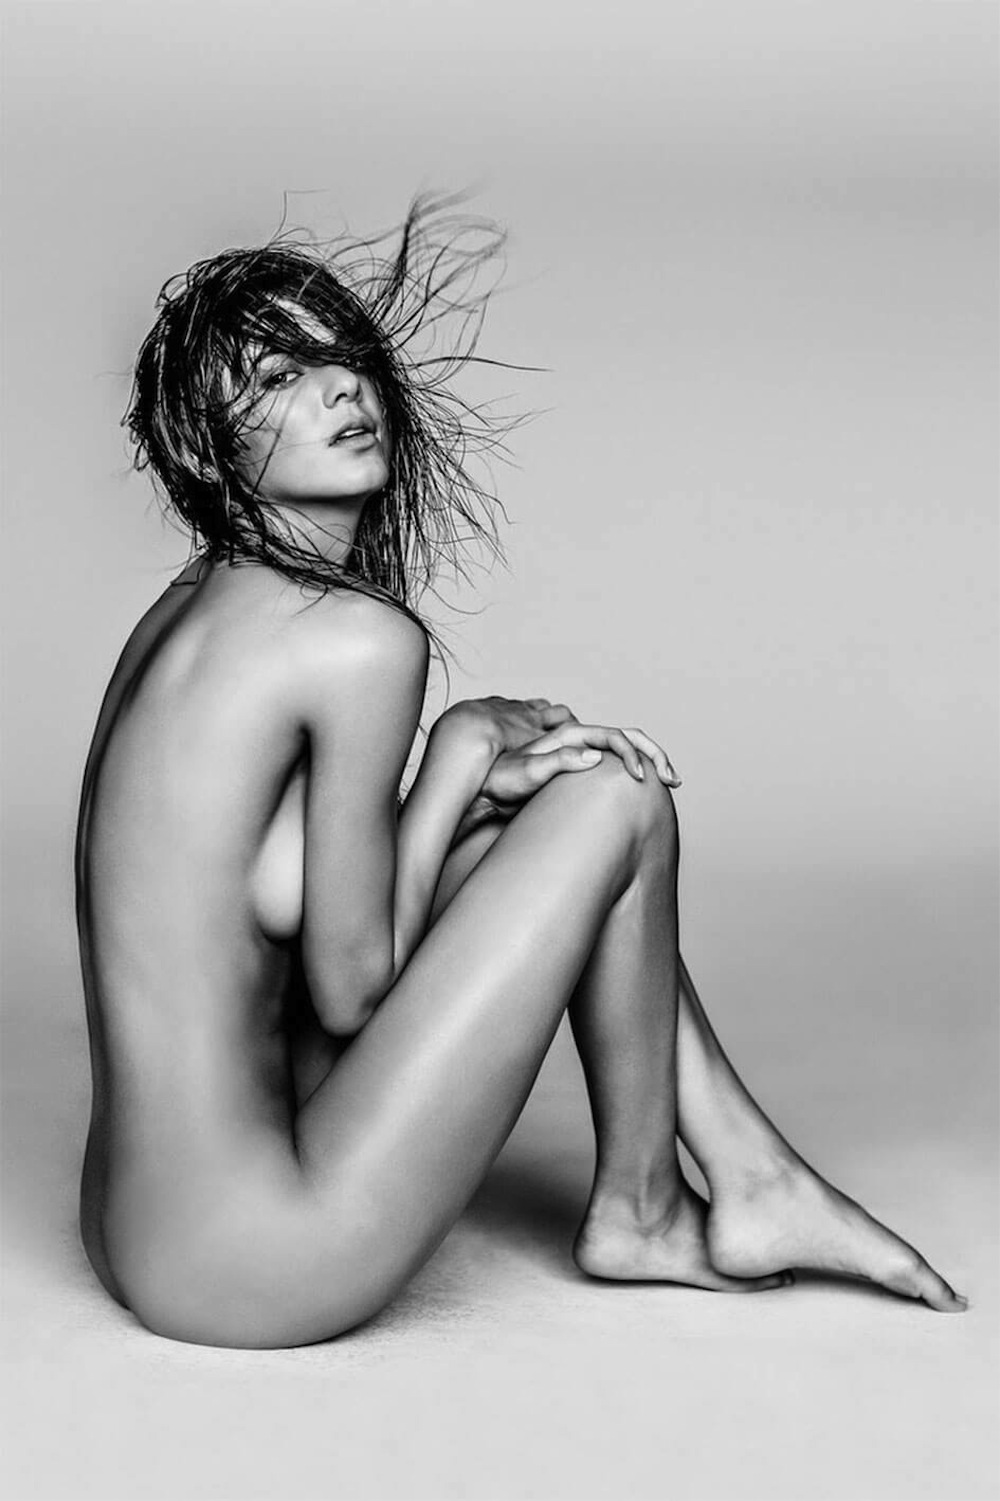 kendall-jenner-angels-russell-james-culture and life-02